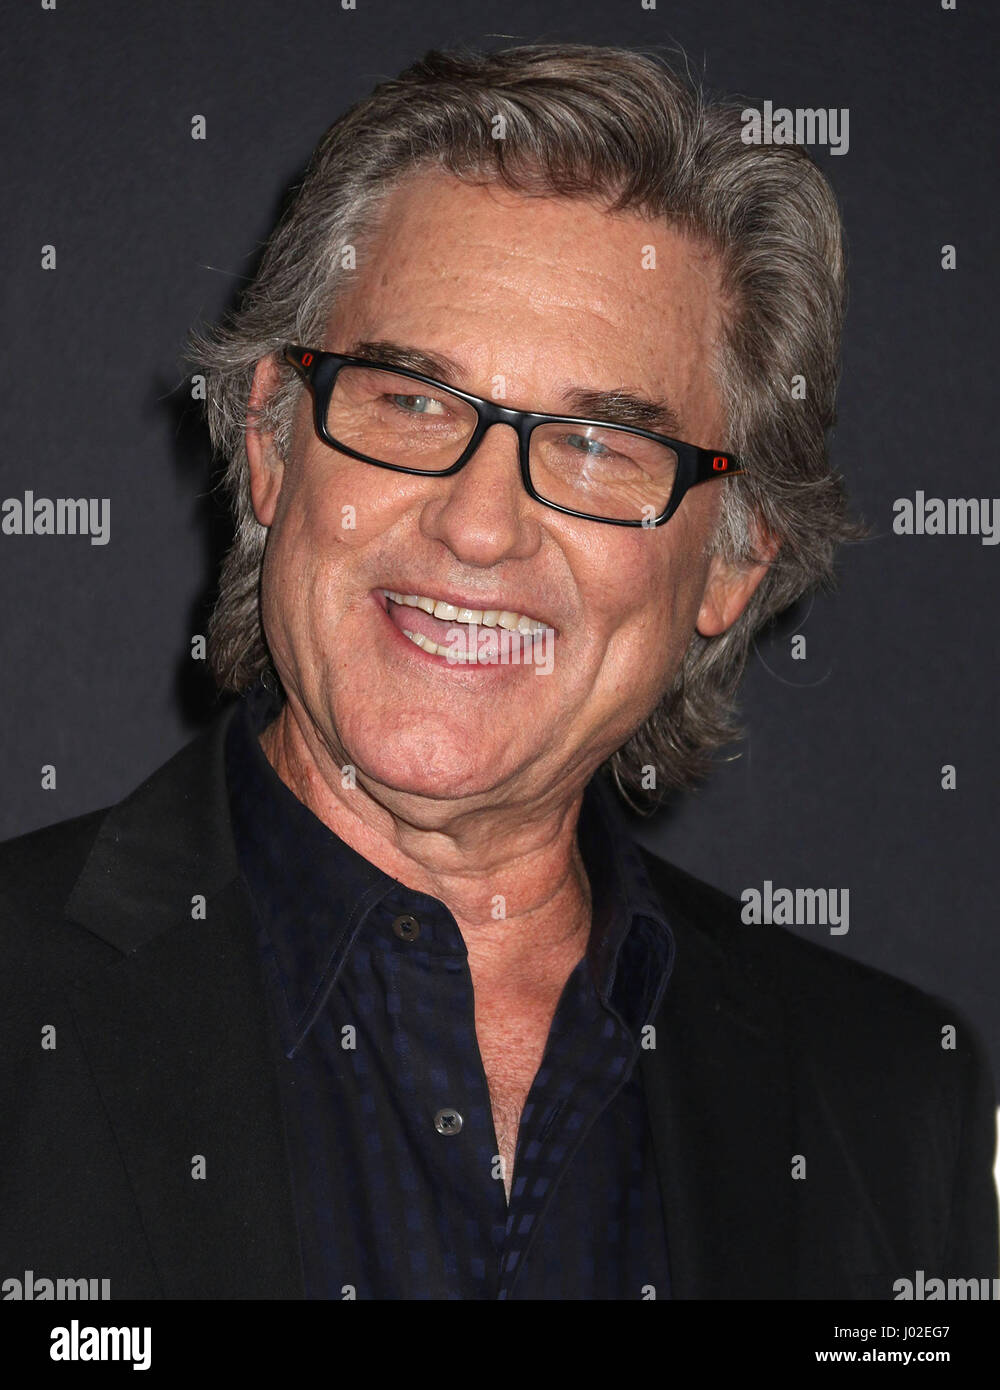 April 8, 2017 - New York, New York, U.S. - Actor KURT RUSSELL attends the New York Premiere of 'The Fate of - Stock Image